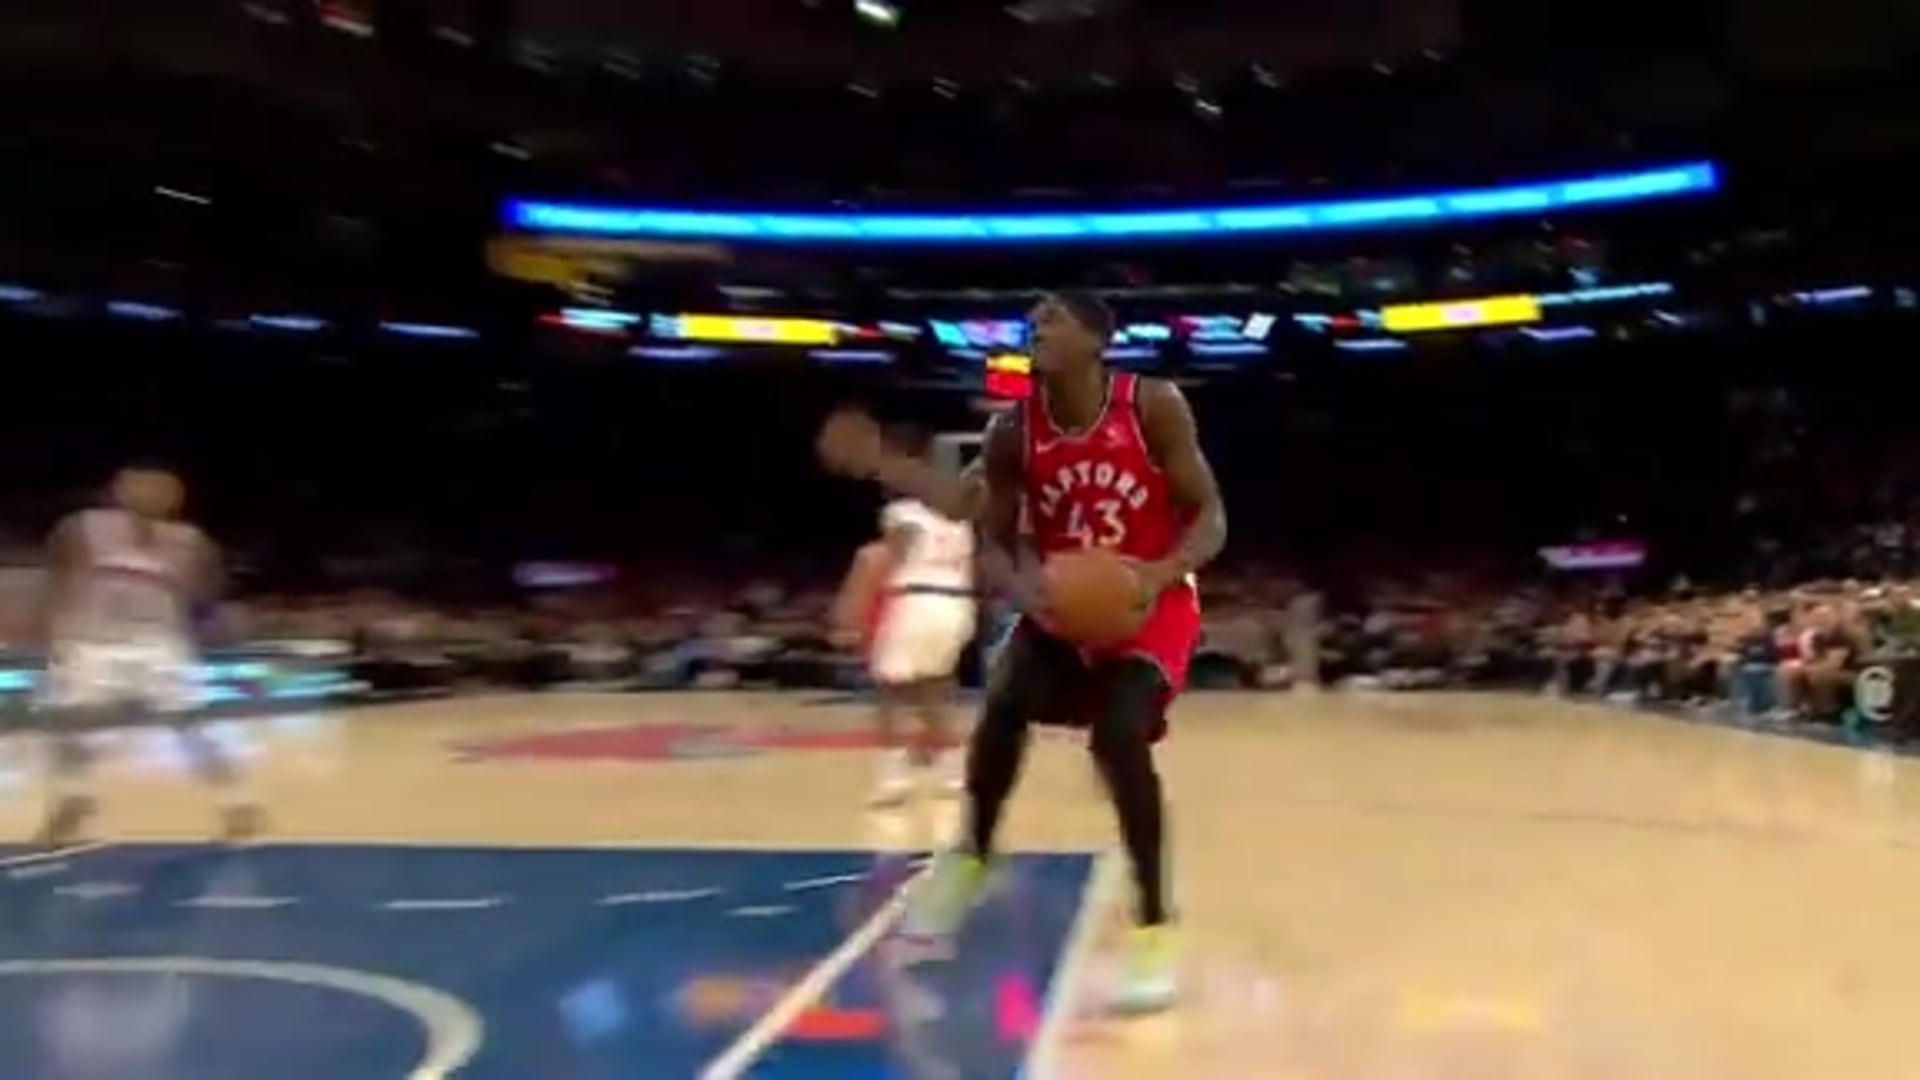 Raptors Highlights: Siakam Dunk - January 24, 2020